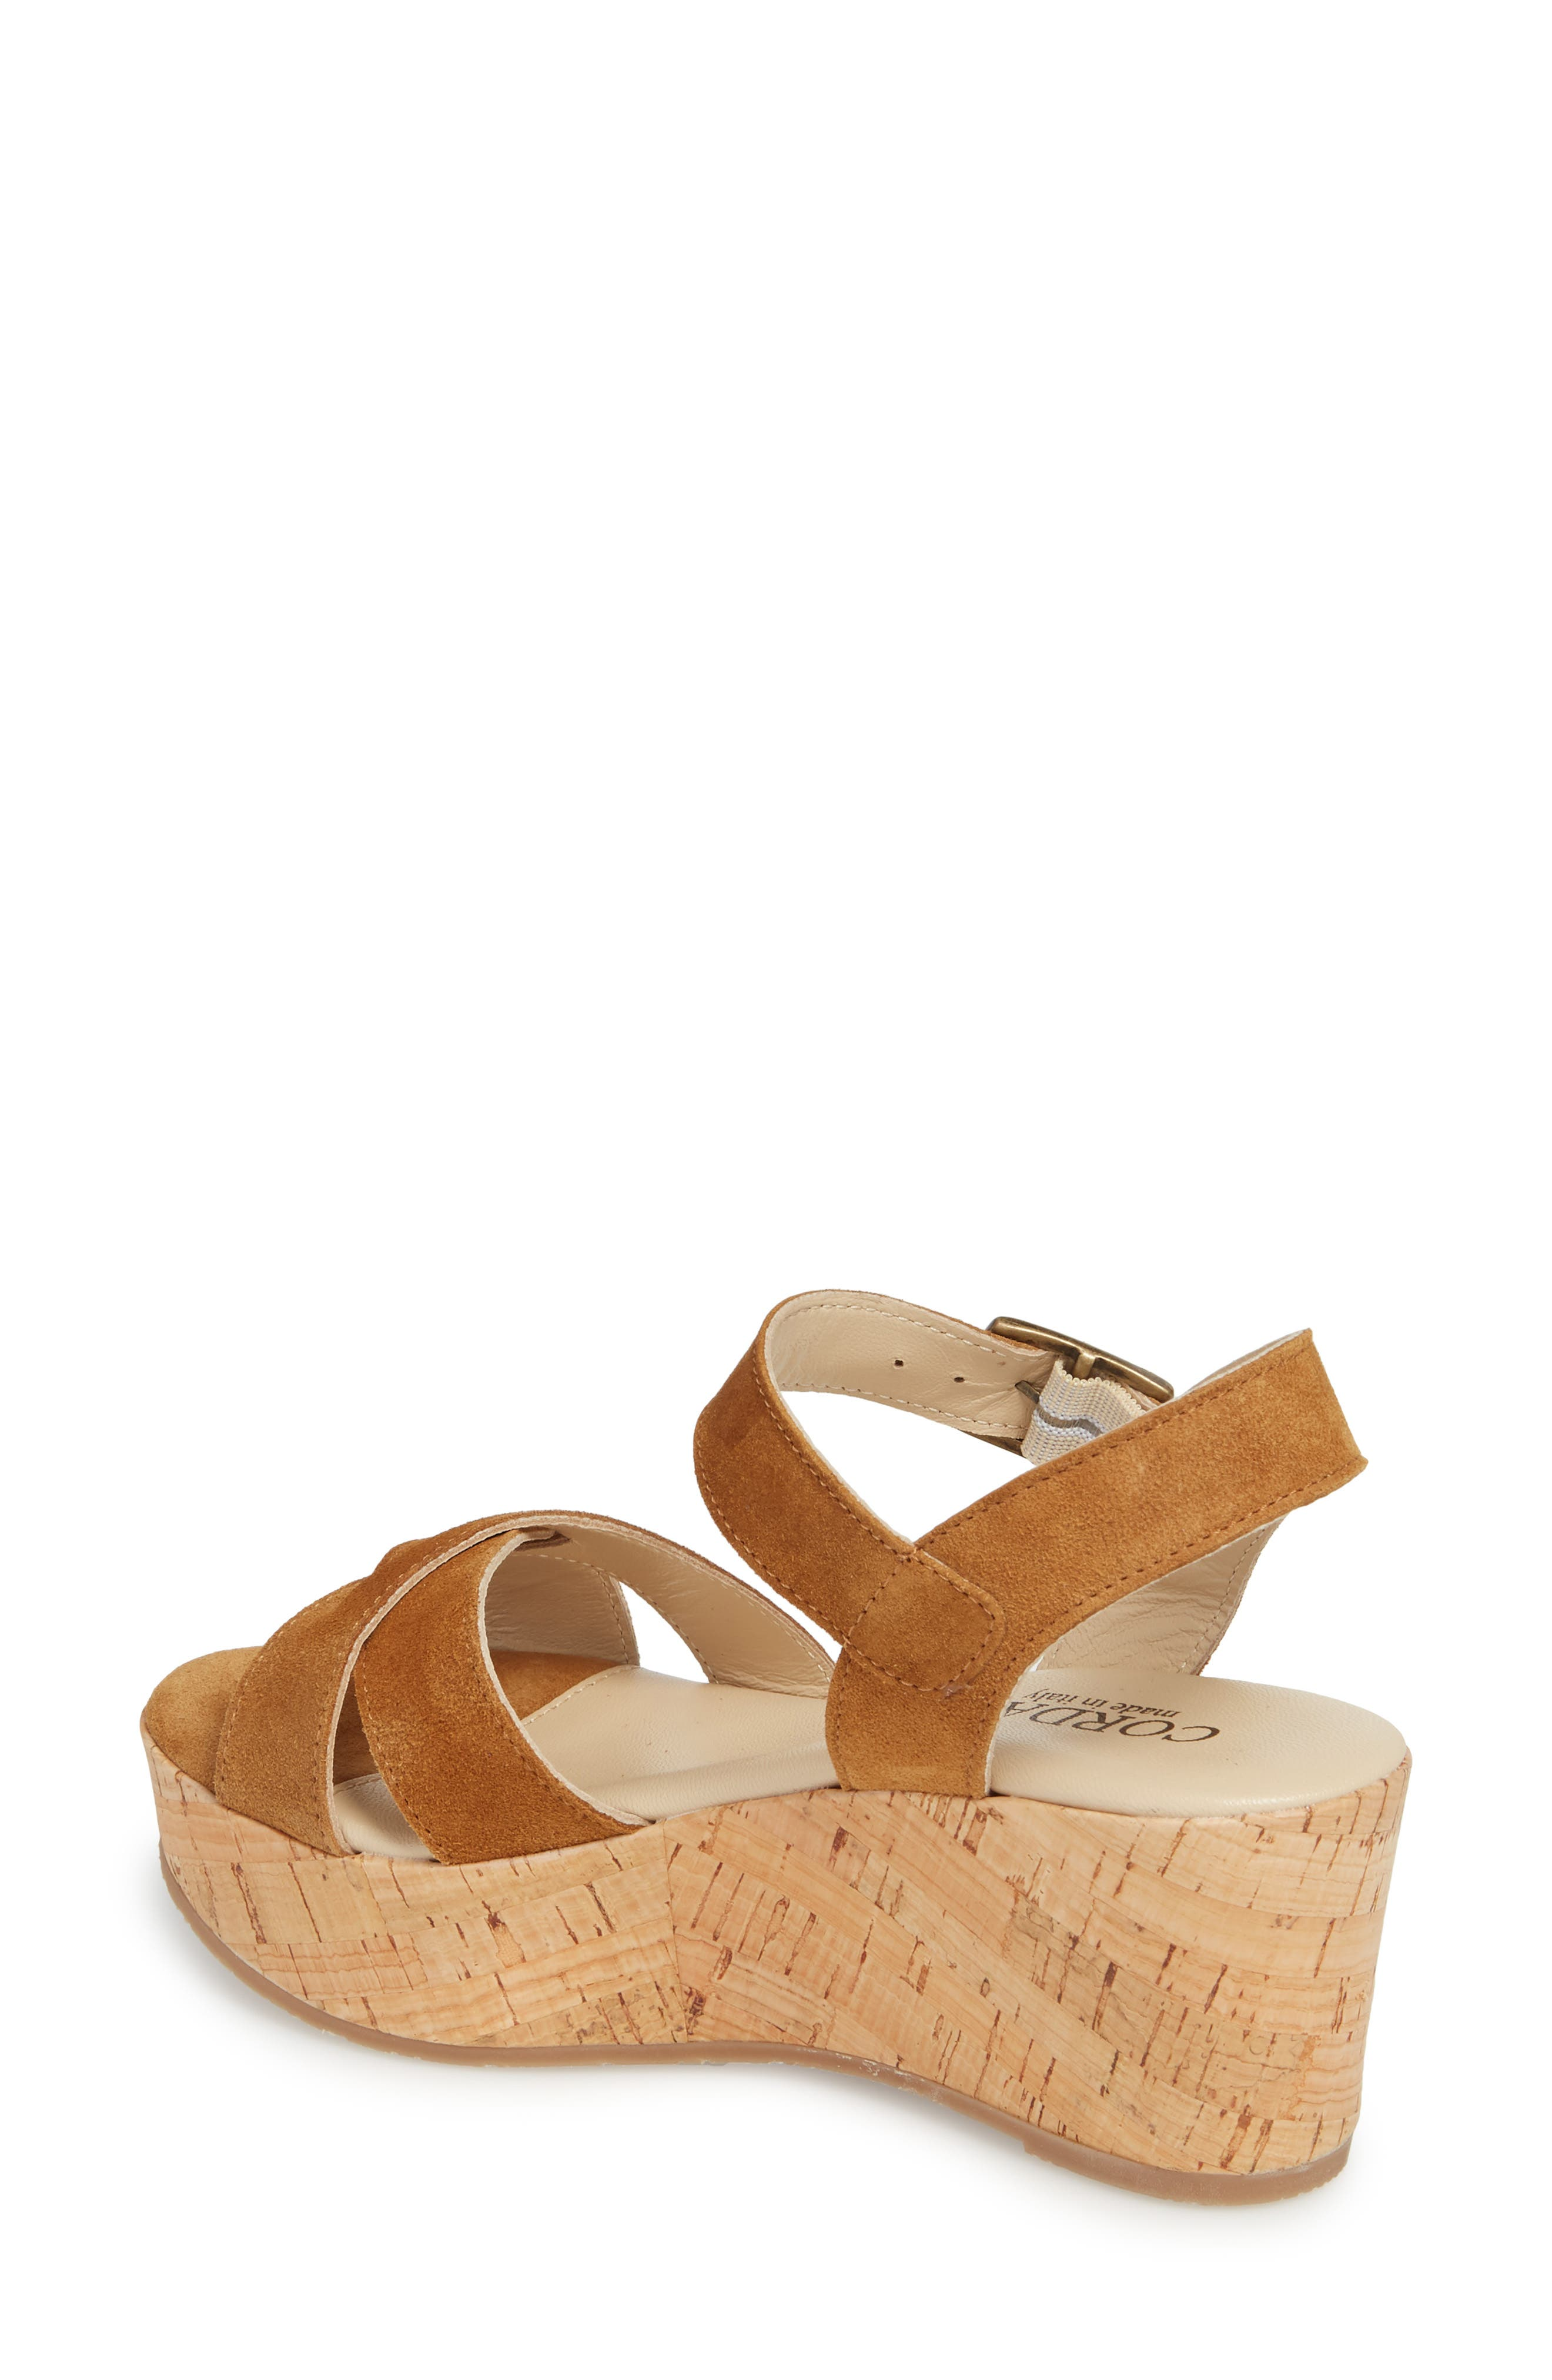 Candy Wedge Sandal,                             Alternate thumbnail 2, color,                             Cola Suede